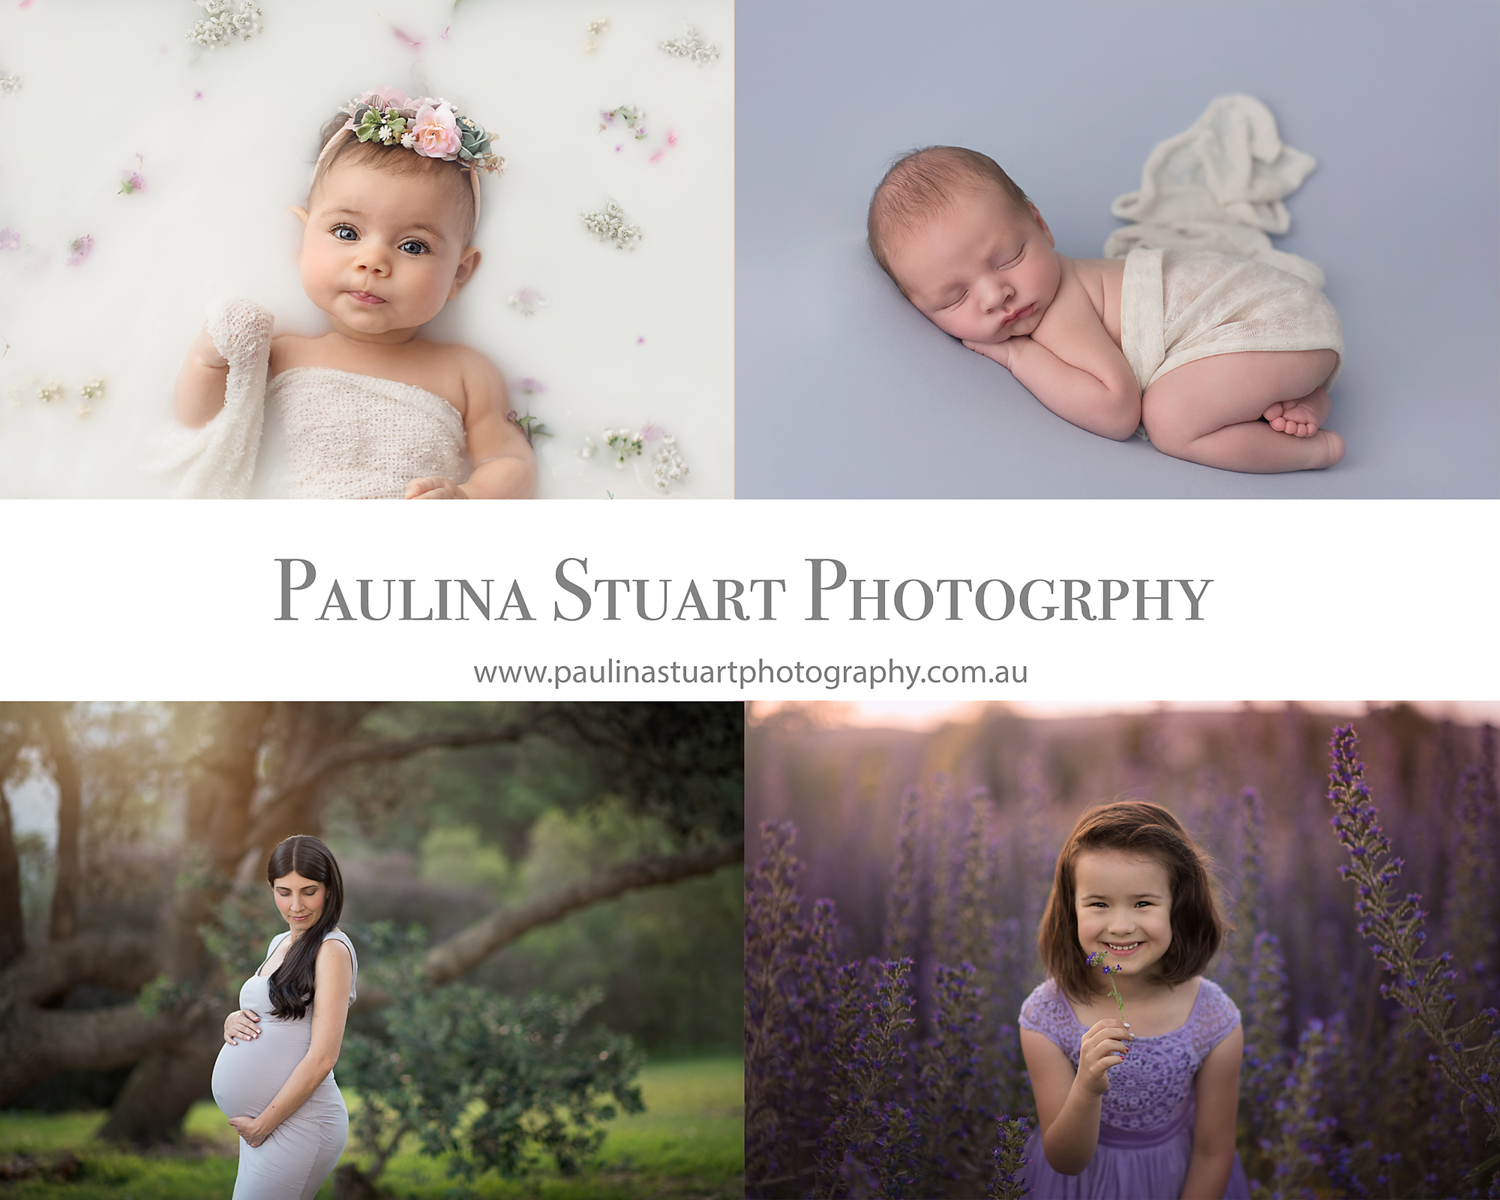 Paulina Stuart Photography